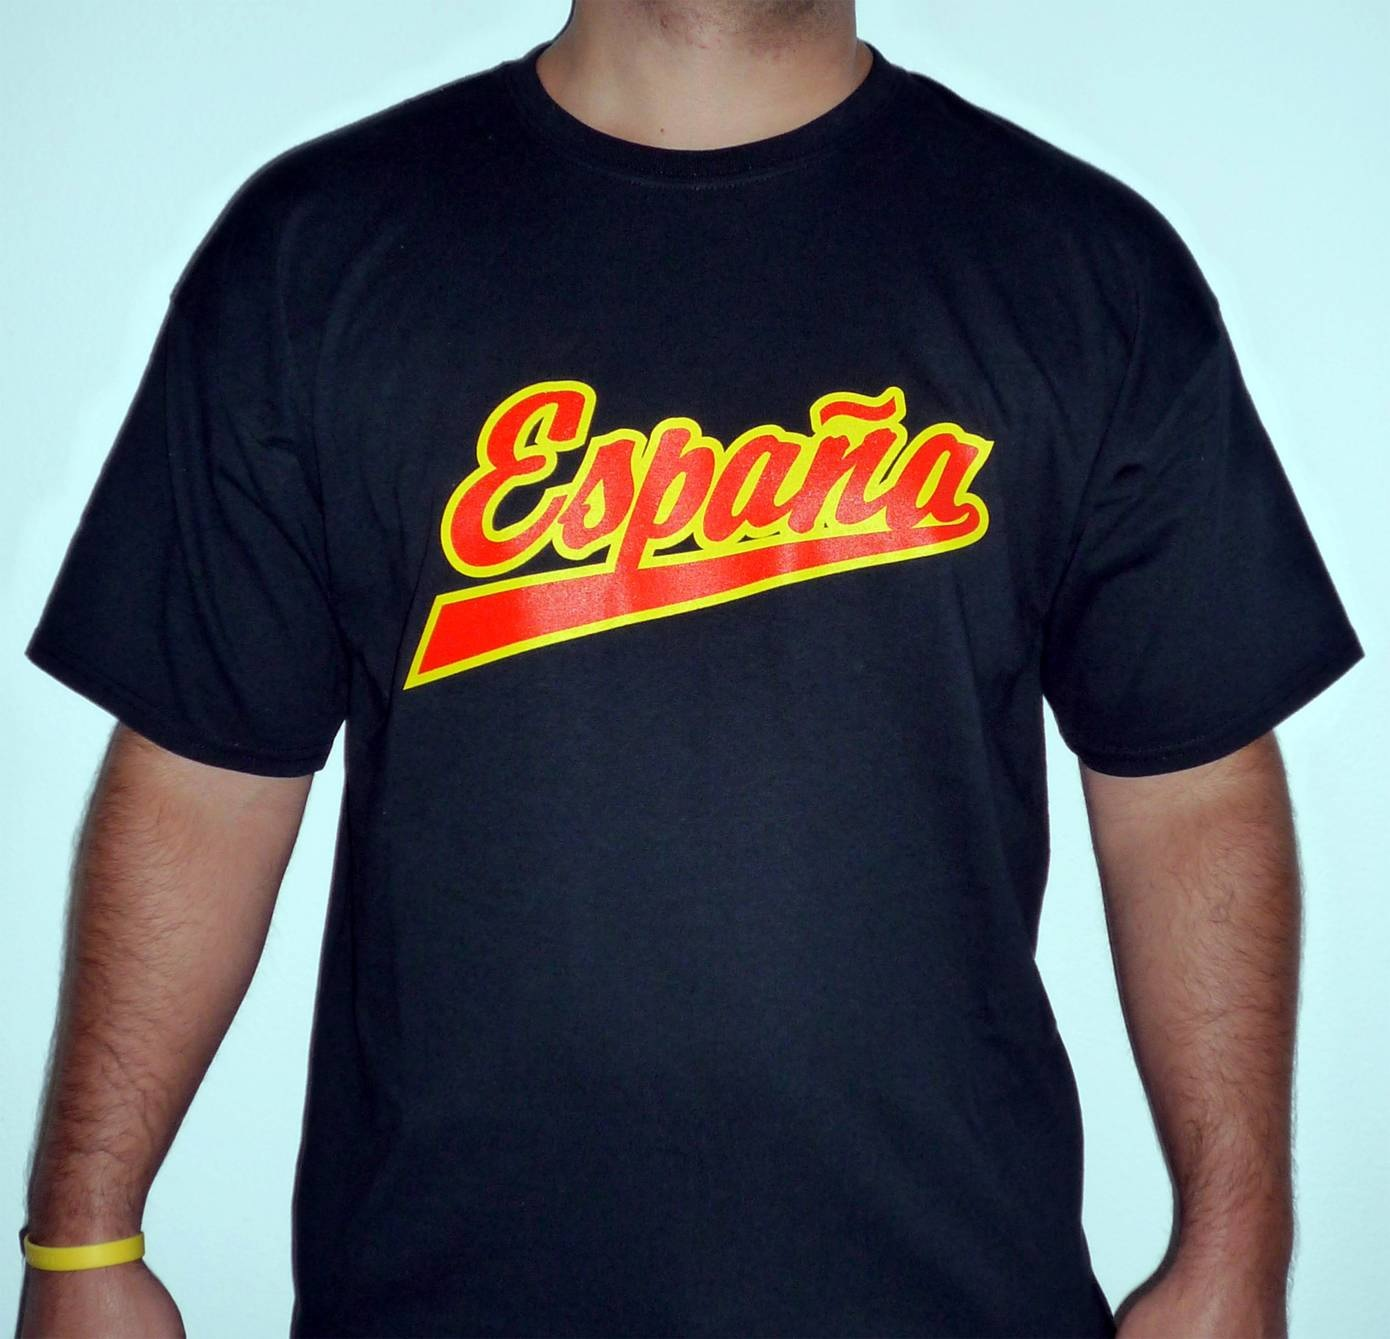 Spanish National Team Player's t-shirt